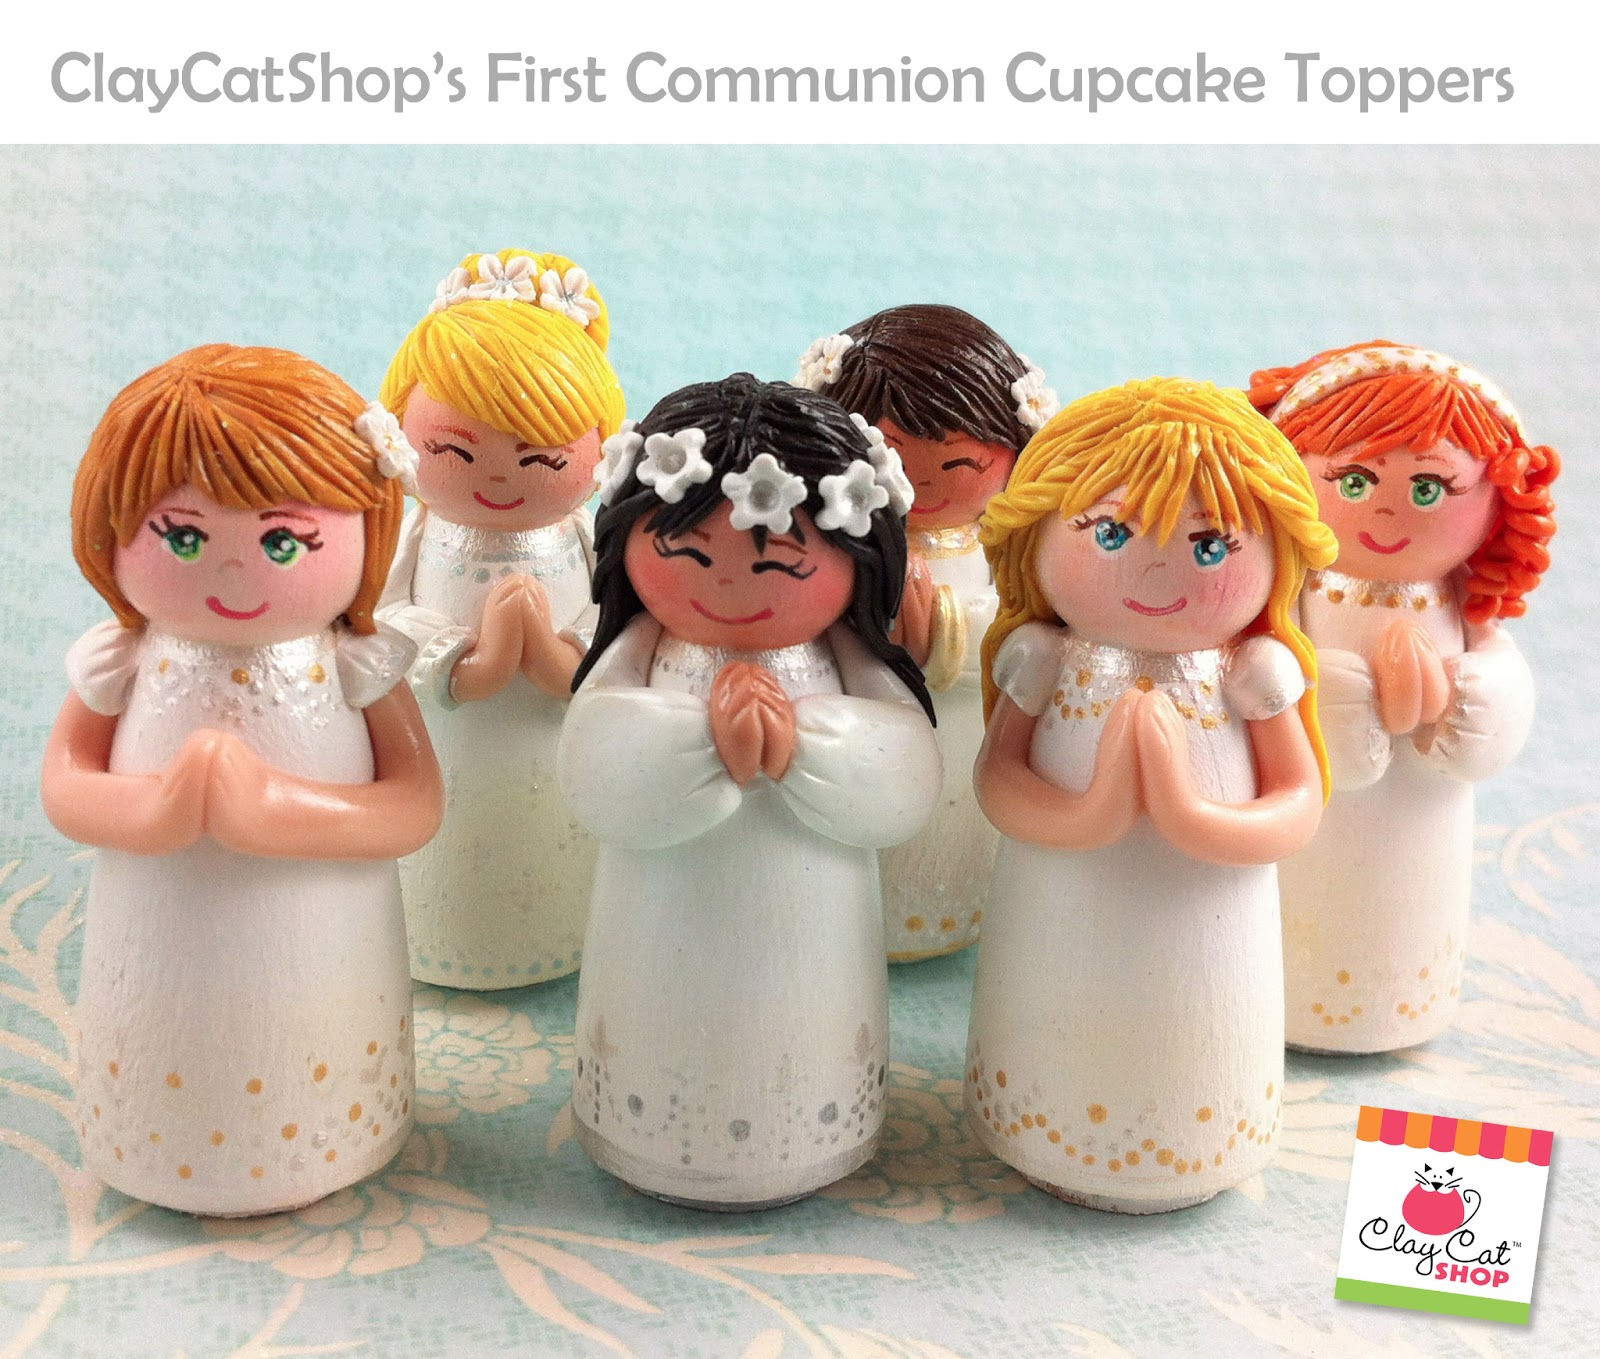 First Communion Cake Toppers ClayCatShop's Blog: Ca...